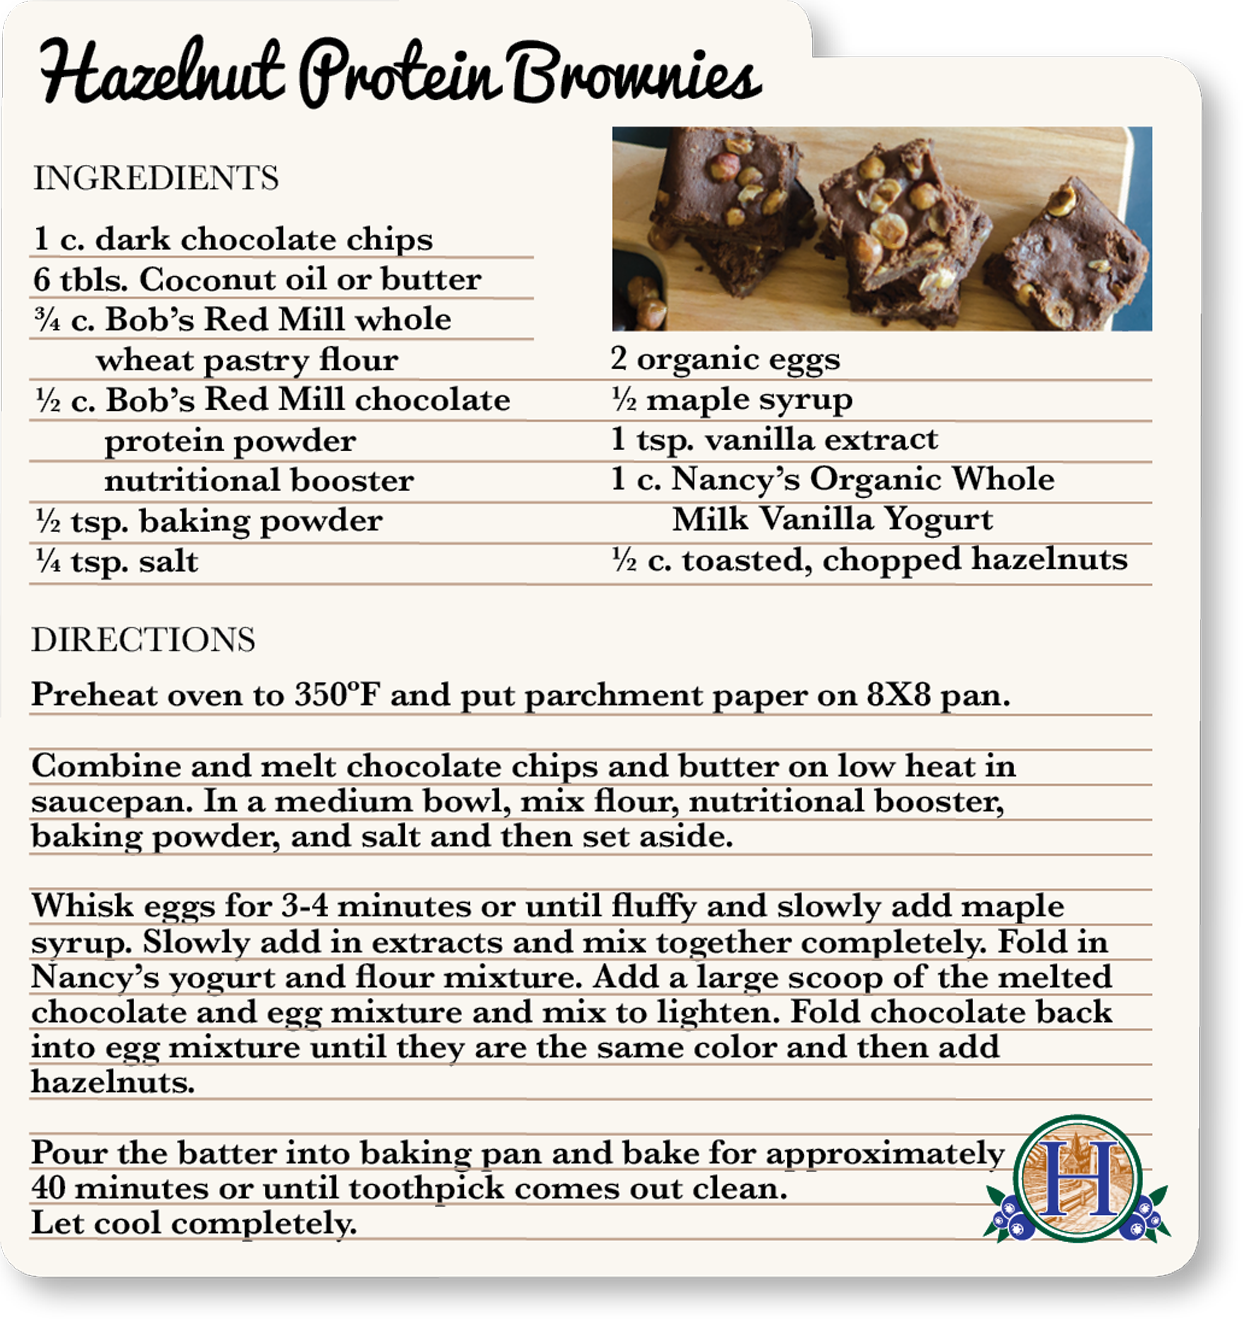 Hazelnut-Protein-Brownies.png